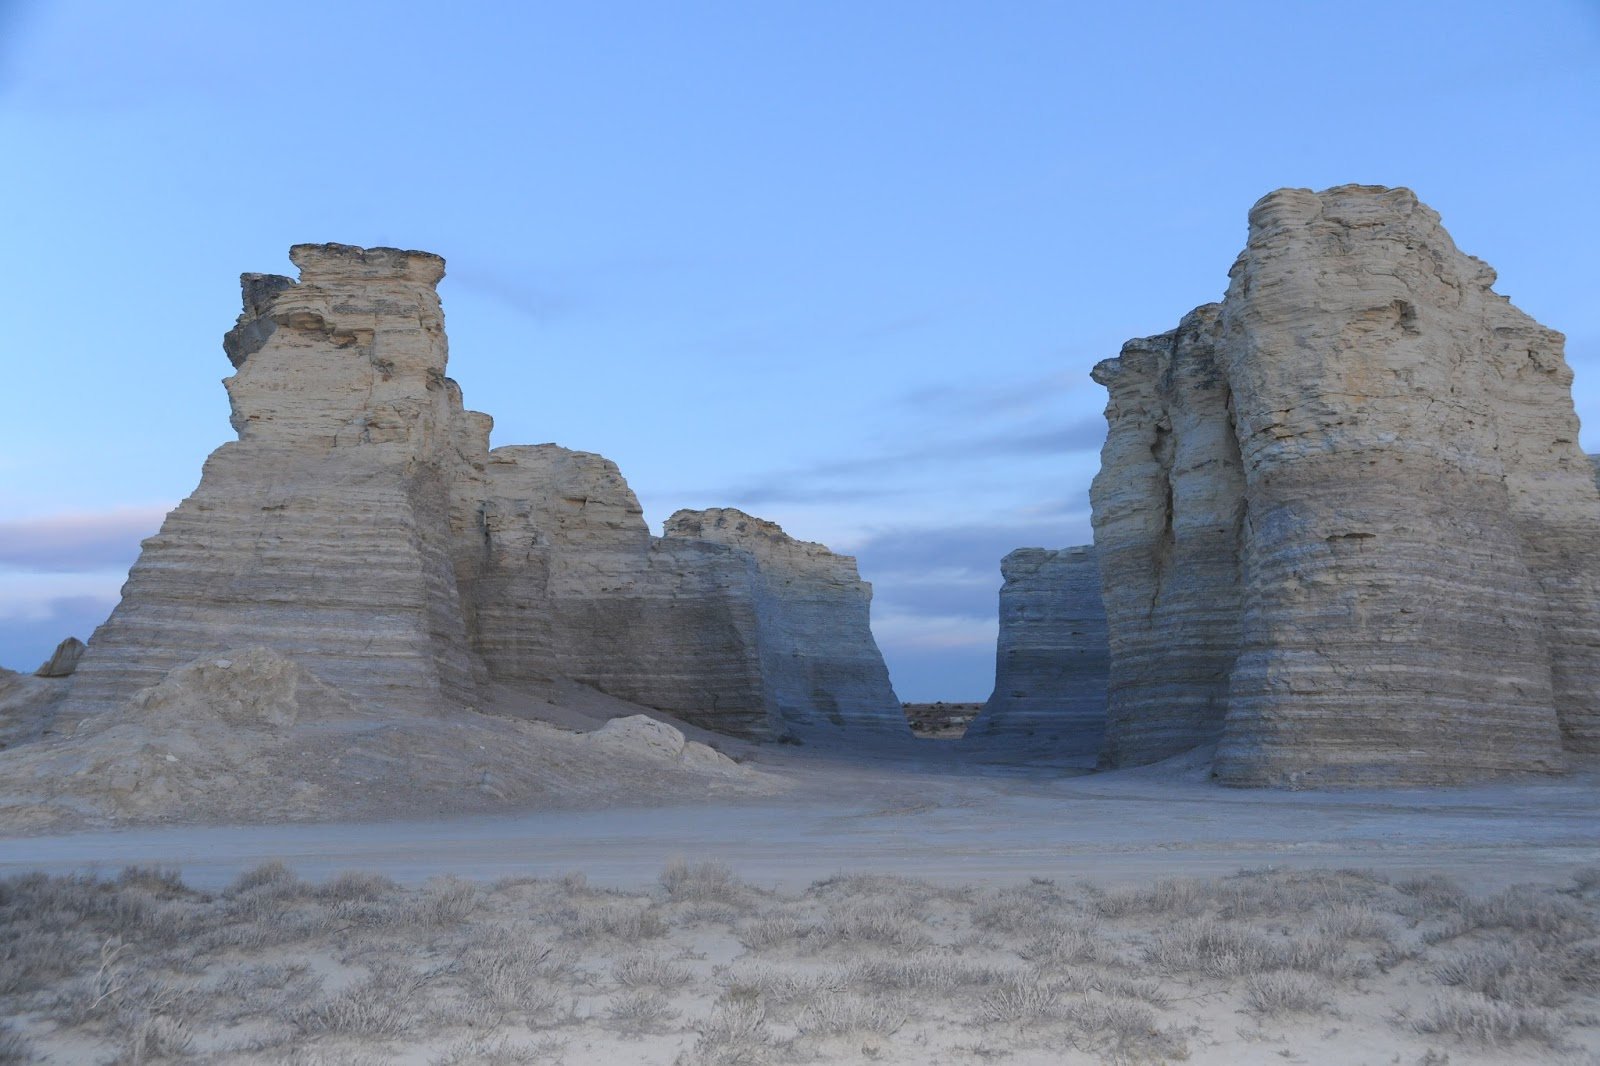 Kansas gove county grinnell - Monument Rock Located In Gove County